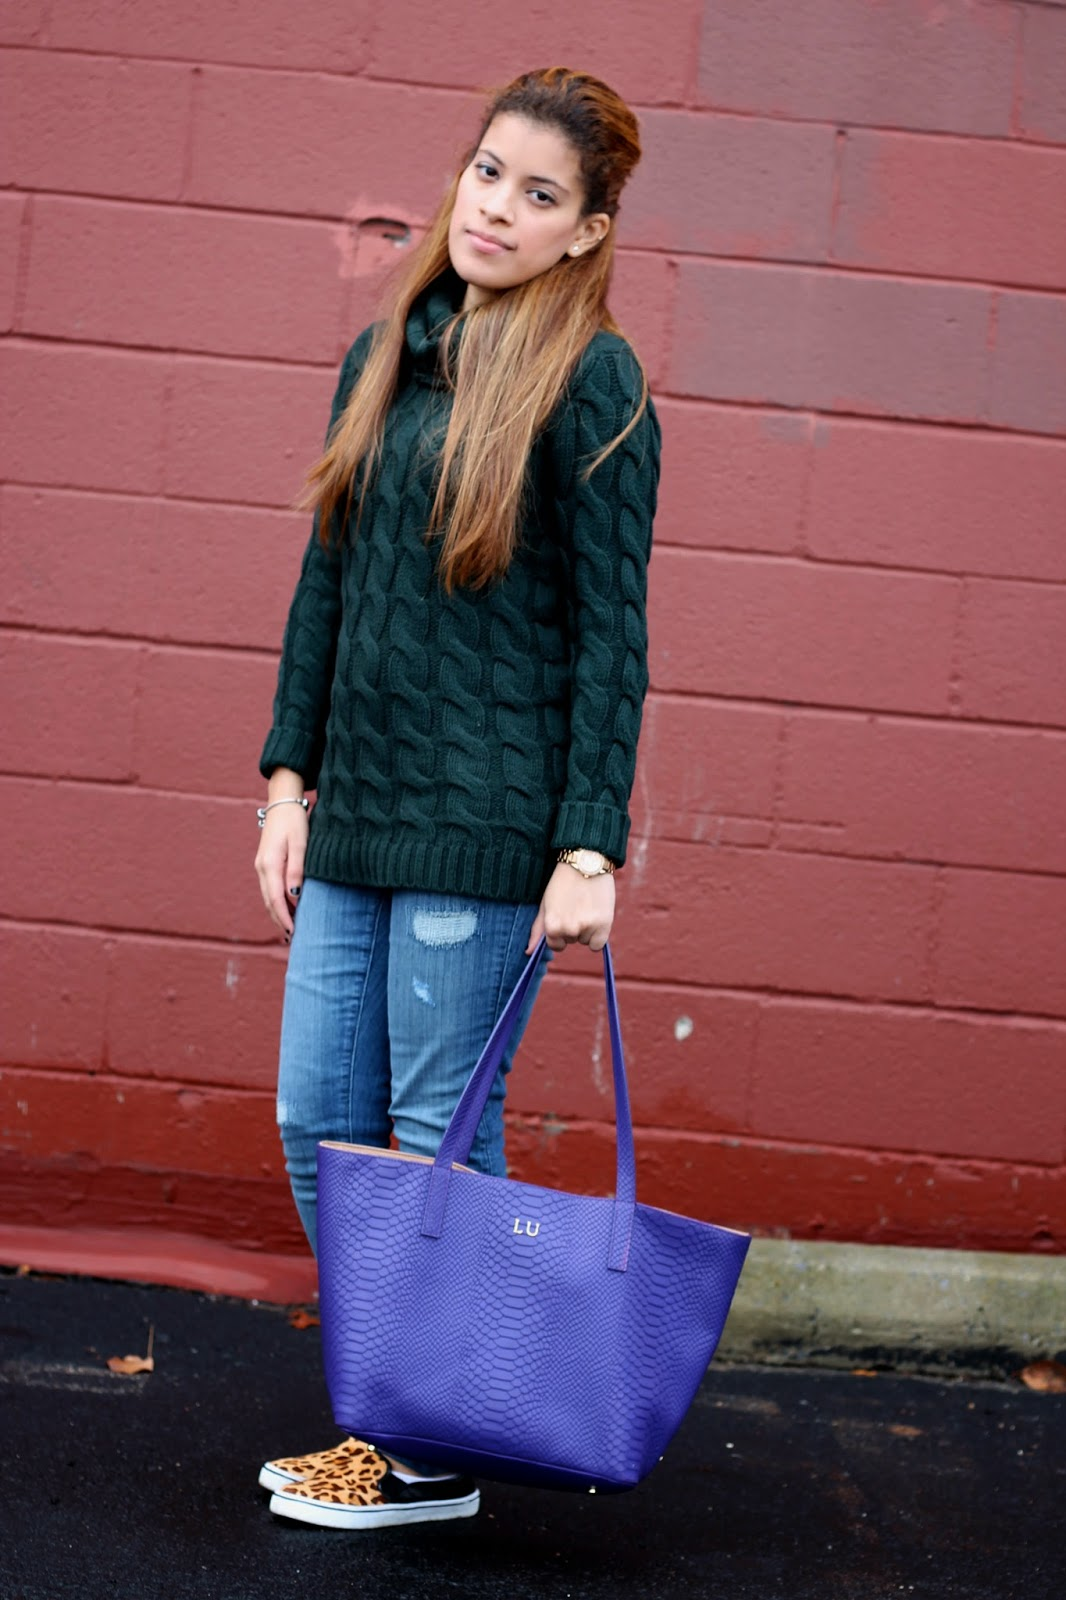 cable knit turtleneck sweater, cable knit, sweater, turtleneck, gigi newyork, teddie tote, embossed python, purple, green, fossil, nordstrom rack, nordstrom, leopard, slip on sneakers, dolce vita, dv, forever 21, fall, winter, fashion, style, woman, women